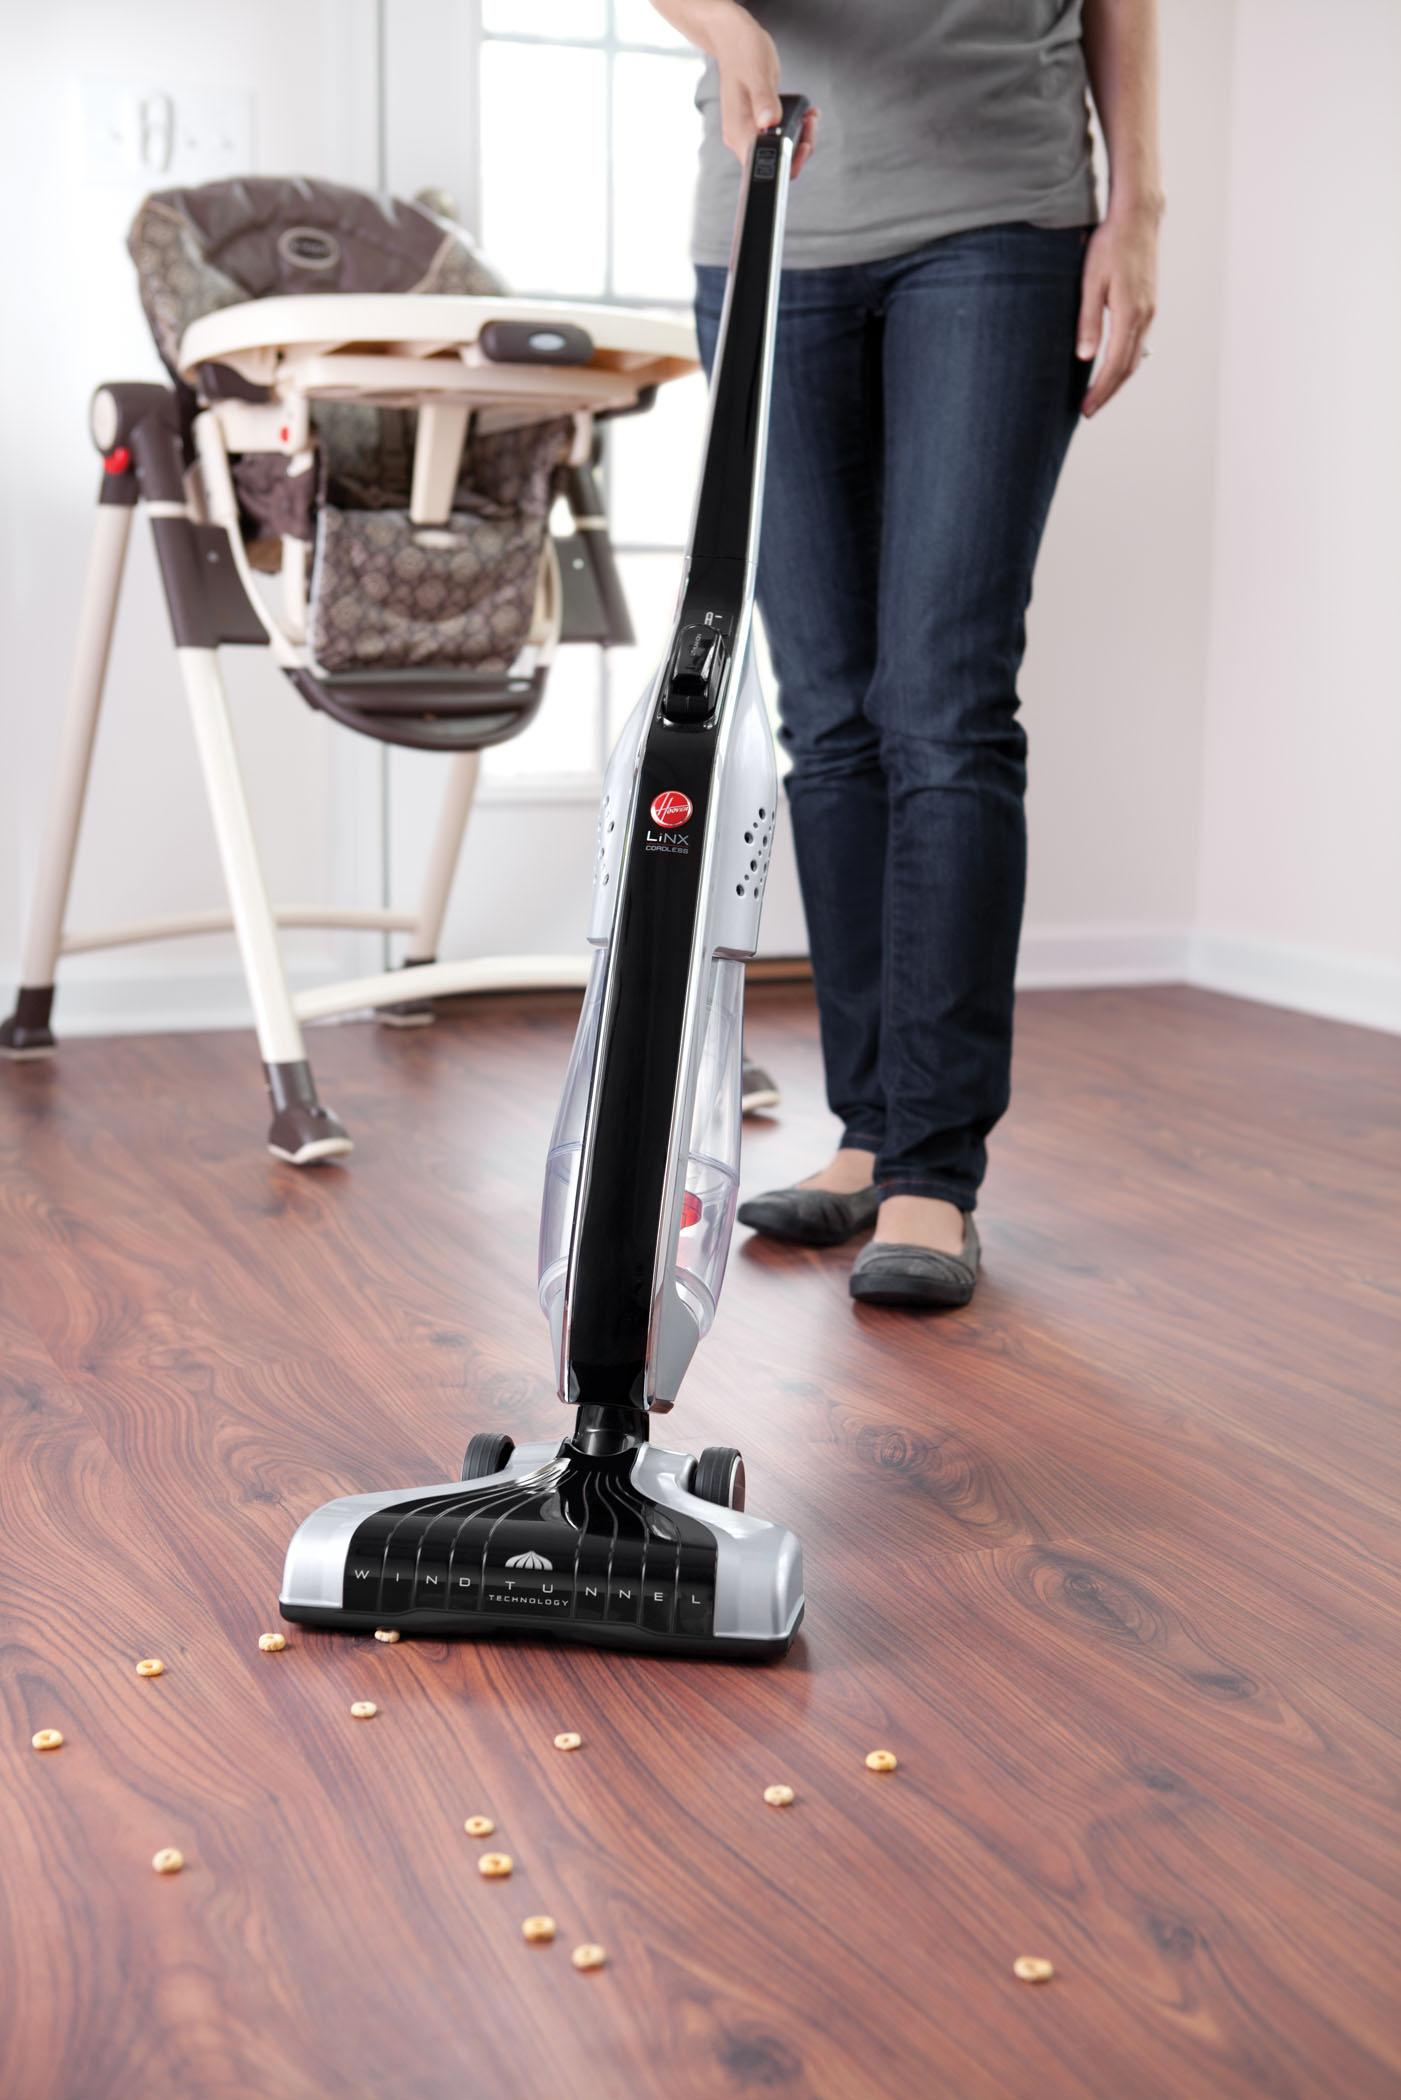 Hoover Linx Cordless Stick Vacuum Cleaner Bh50010 Amazon